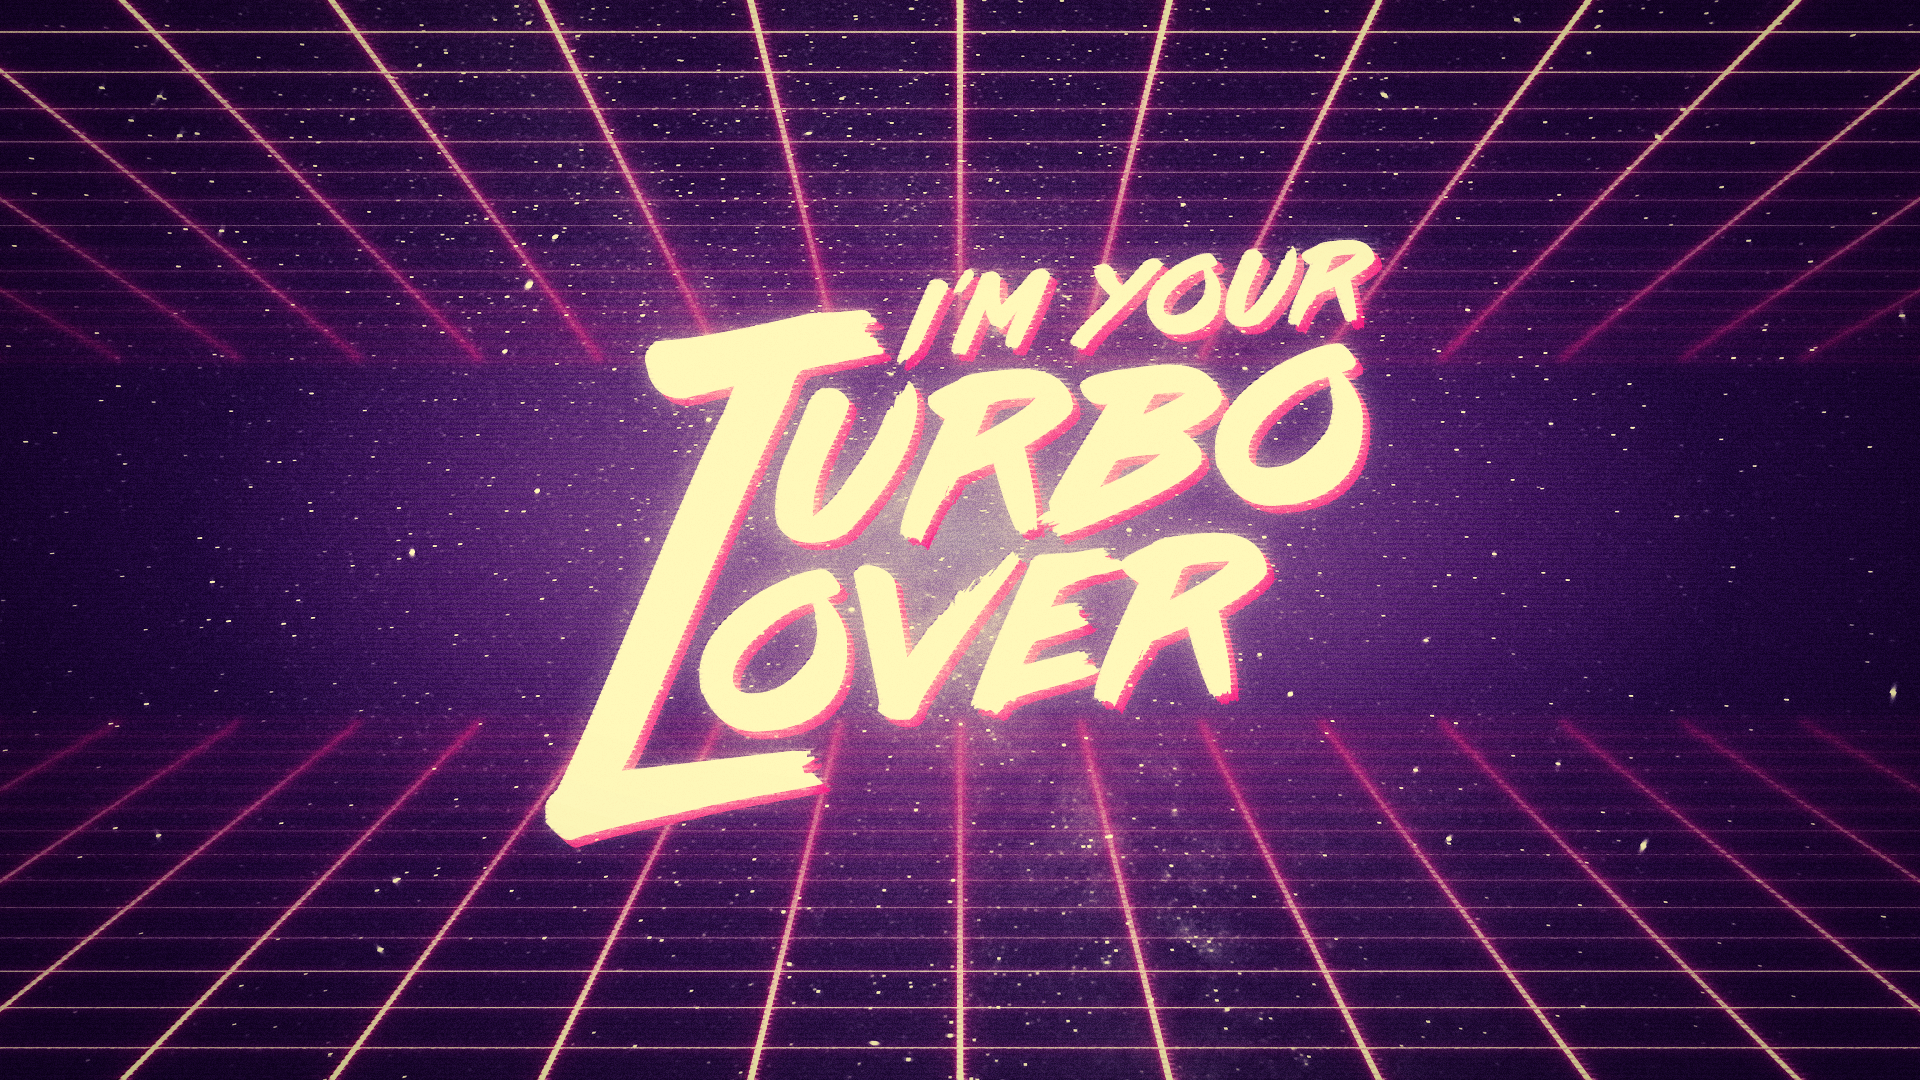 Turbo Lover by AngeloOlson Turbo Lover by AngeloOlson